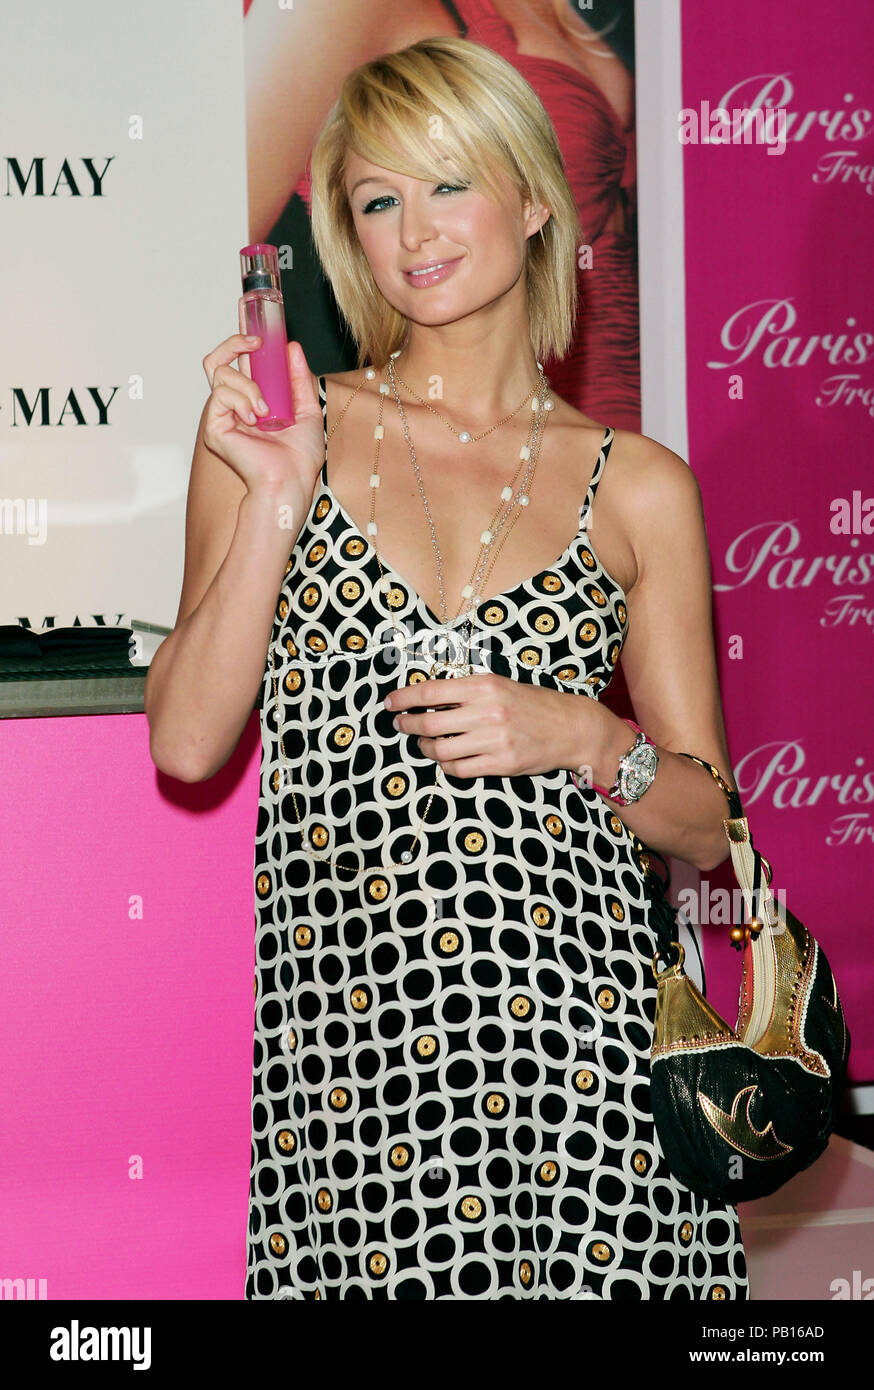 Just Me By Paris Hilton Perfume Launch In Montebello Los Angeles February 9 2006 07 Hiltonparis Red Carpet Event Vertical Usa Film Industry Celebrities Photography Bestof Arts Culture And Entertainment Topix Celebrities Fashion